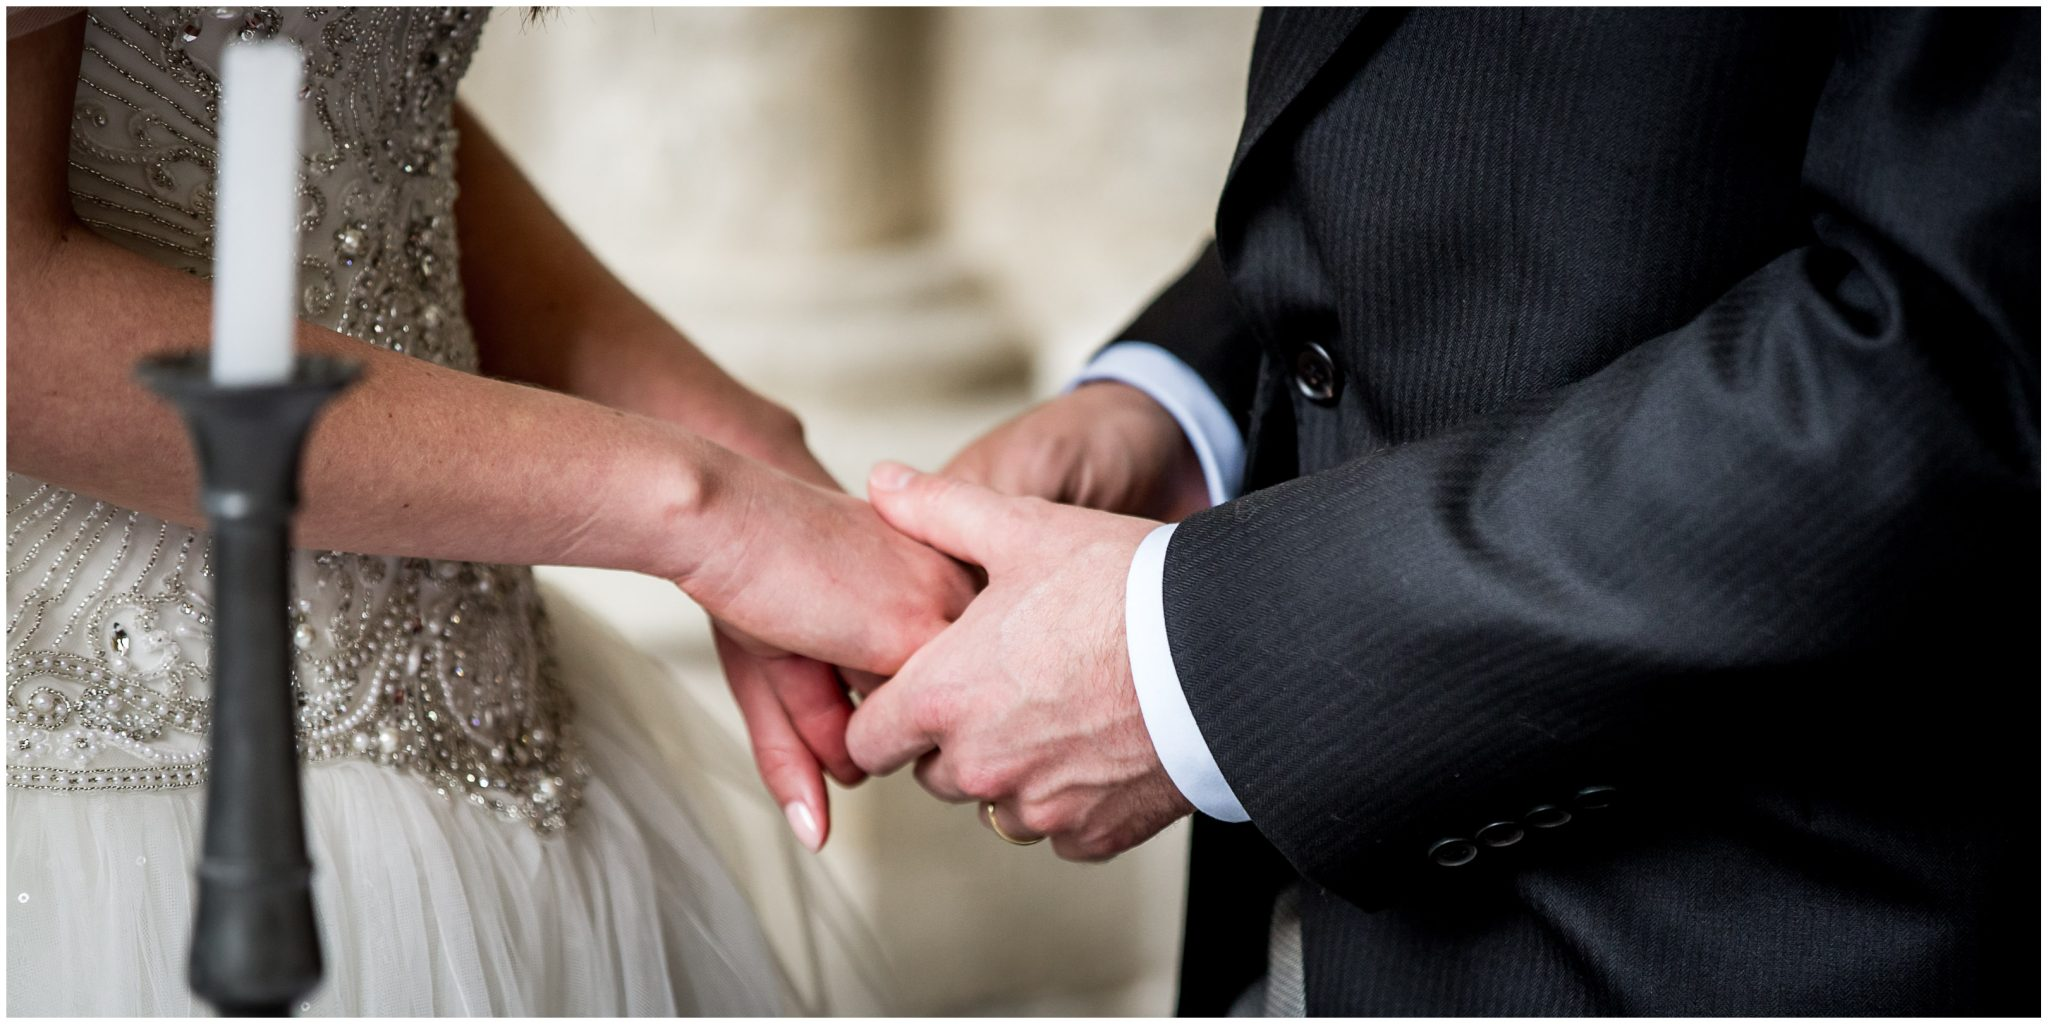 The couple hold hands while they wait to sign the register